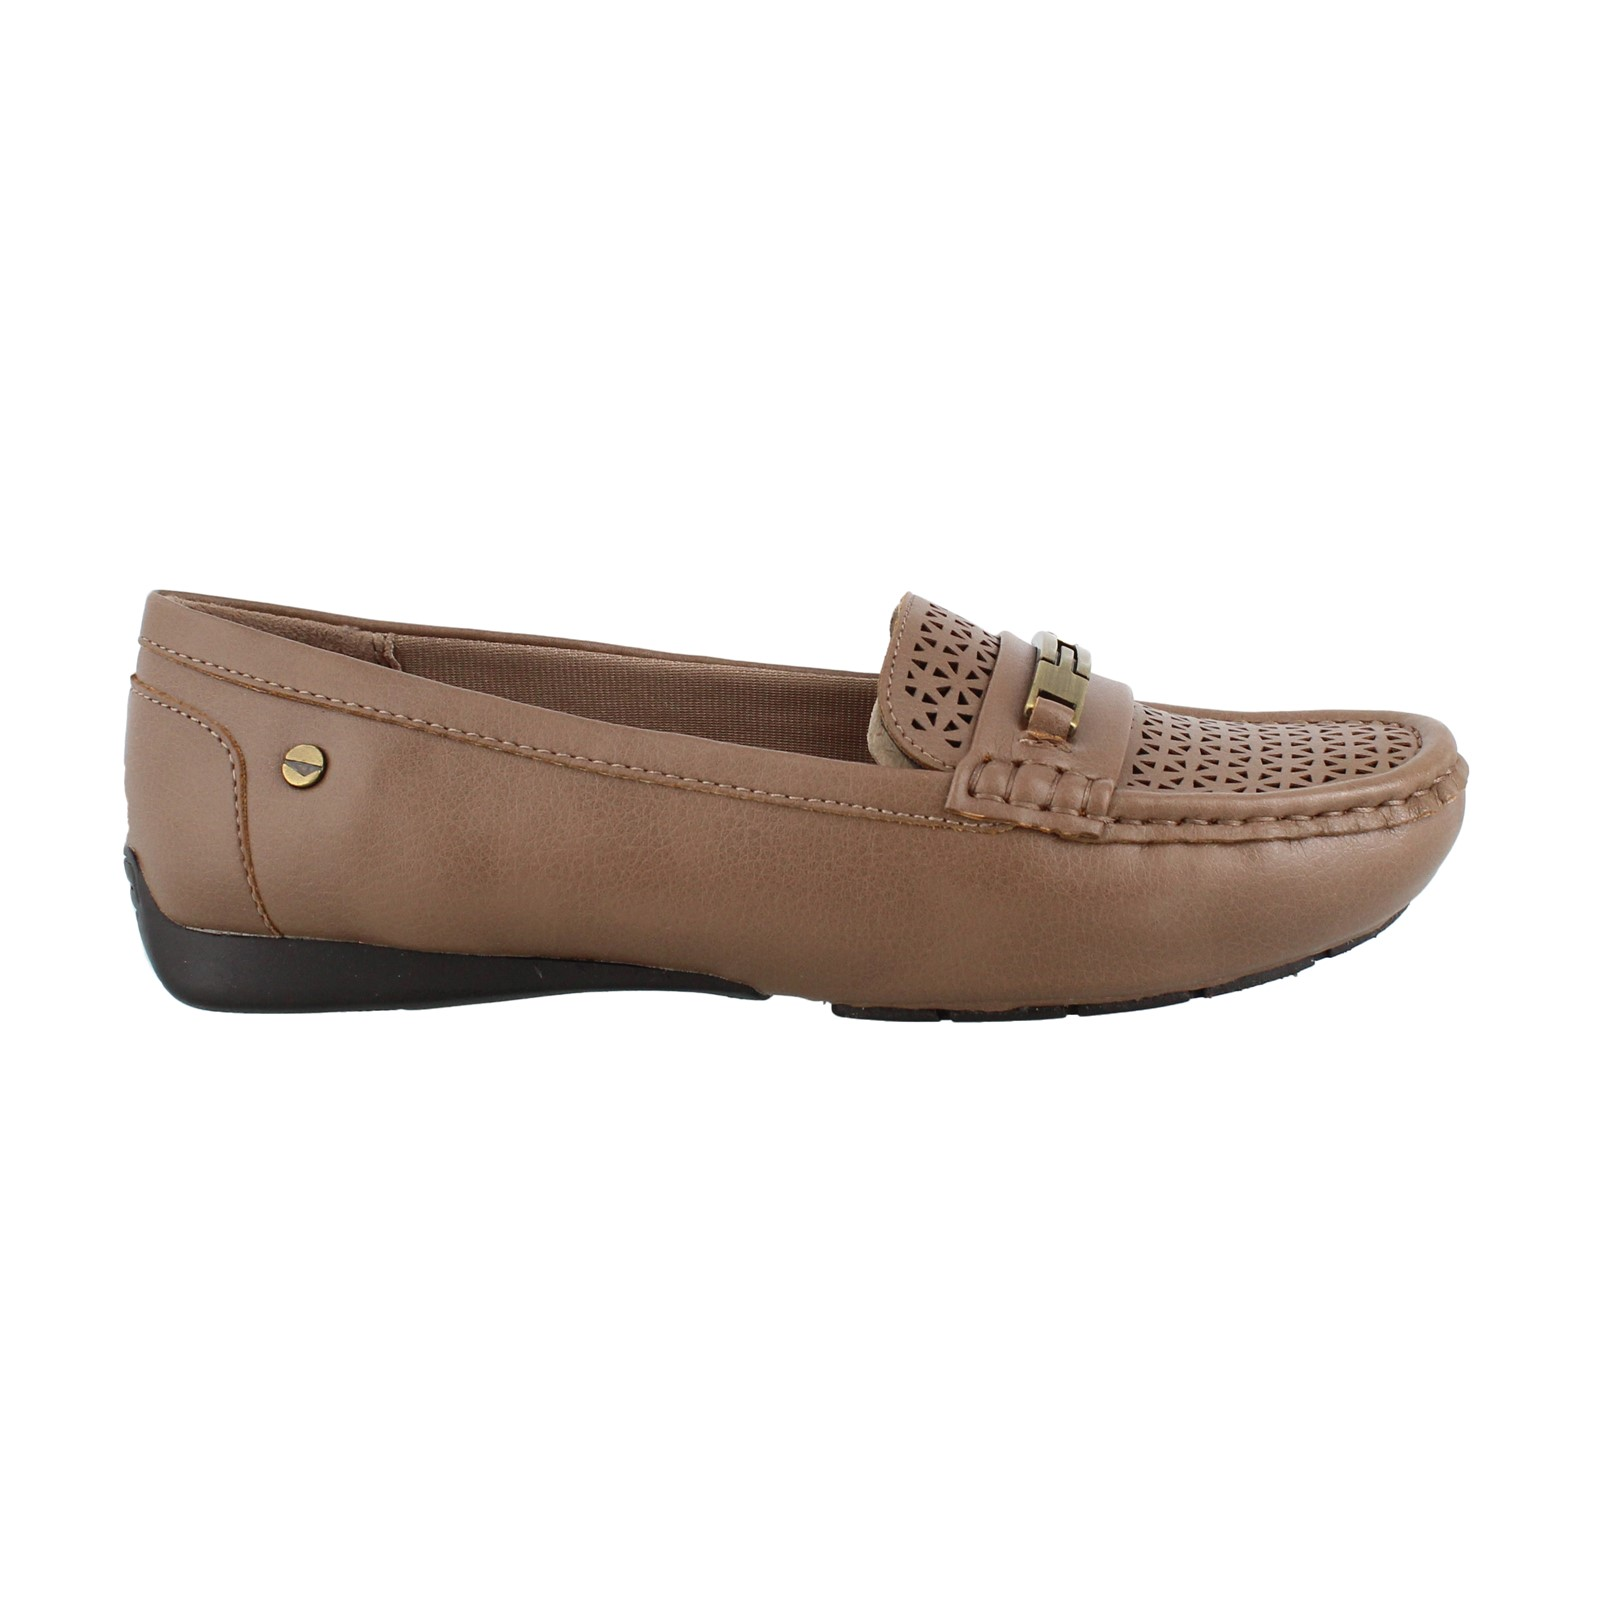 Women's Lifestride, Viva 2 Slip on Loafer